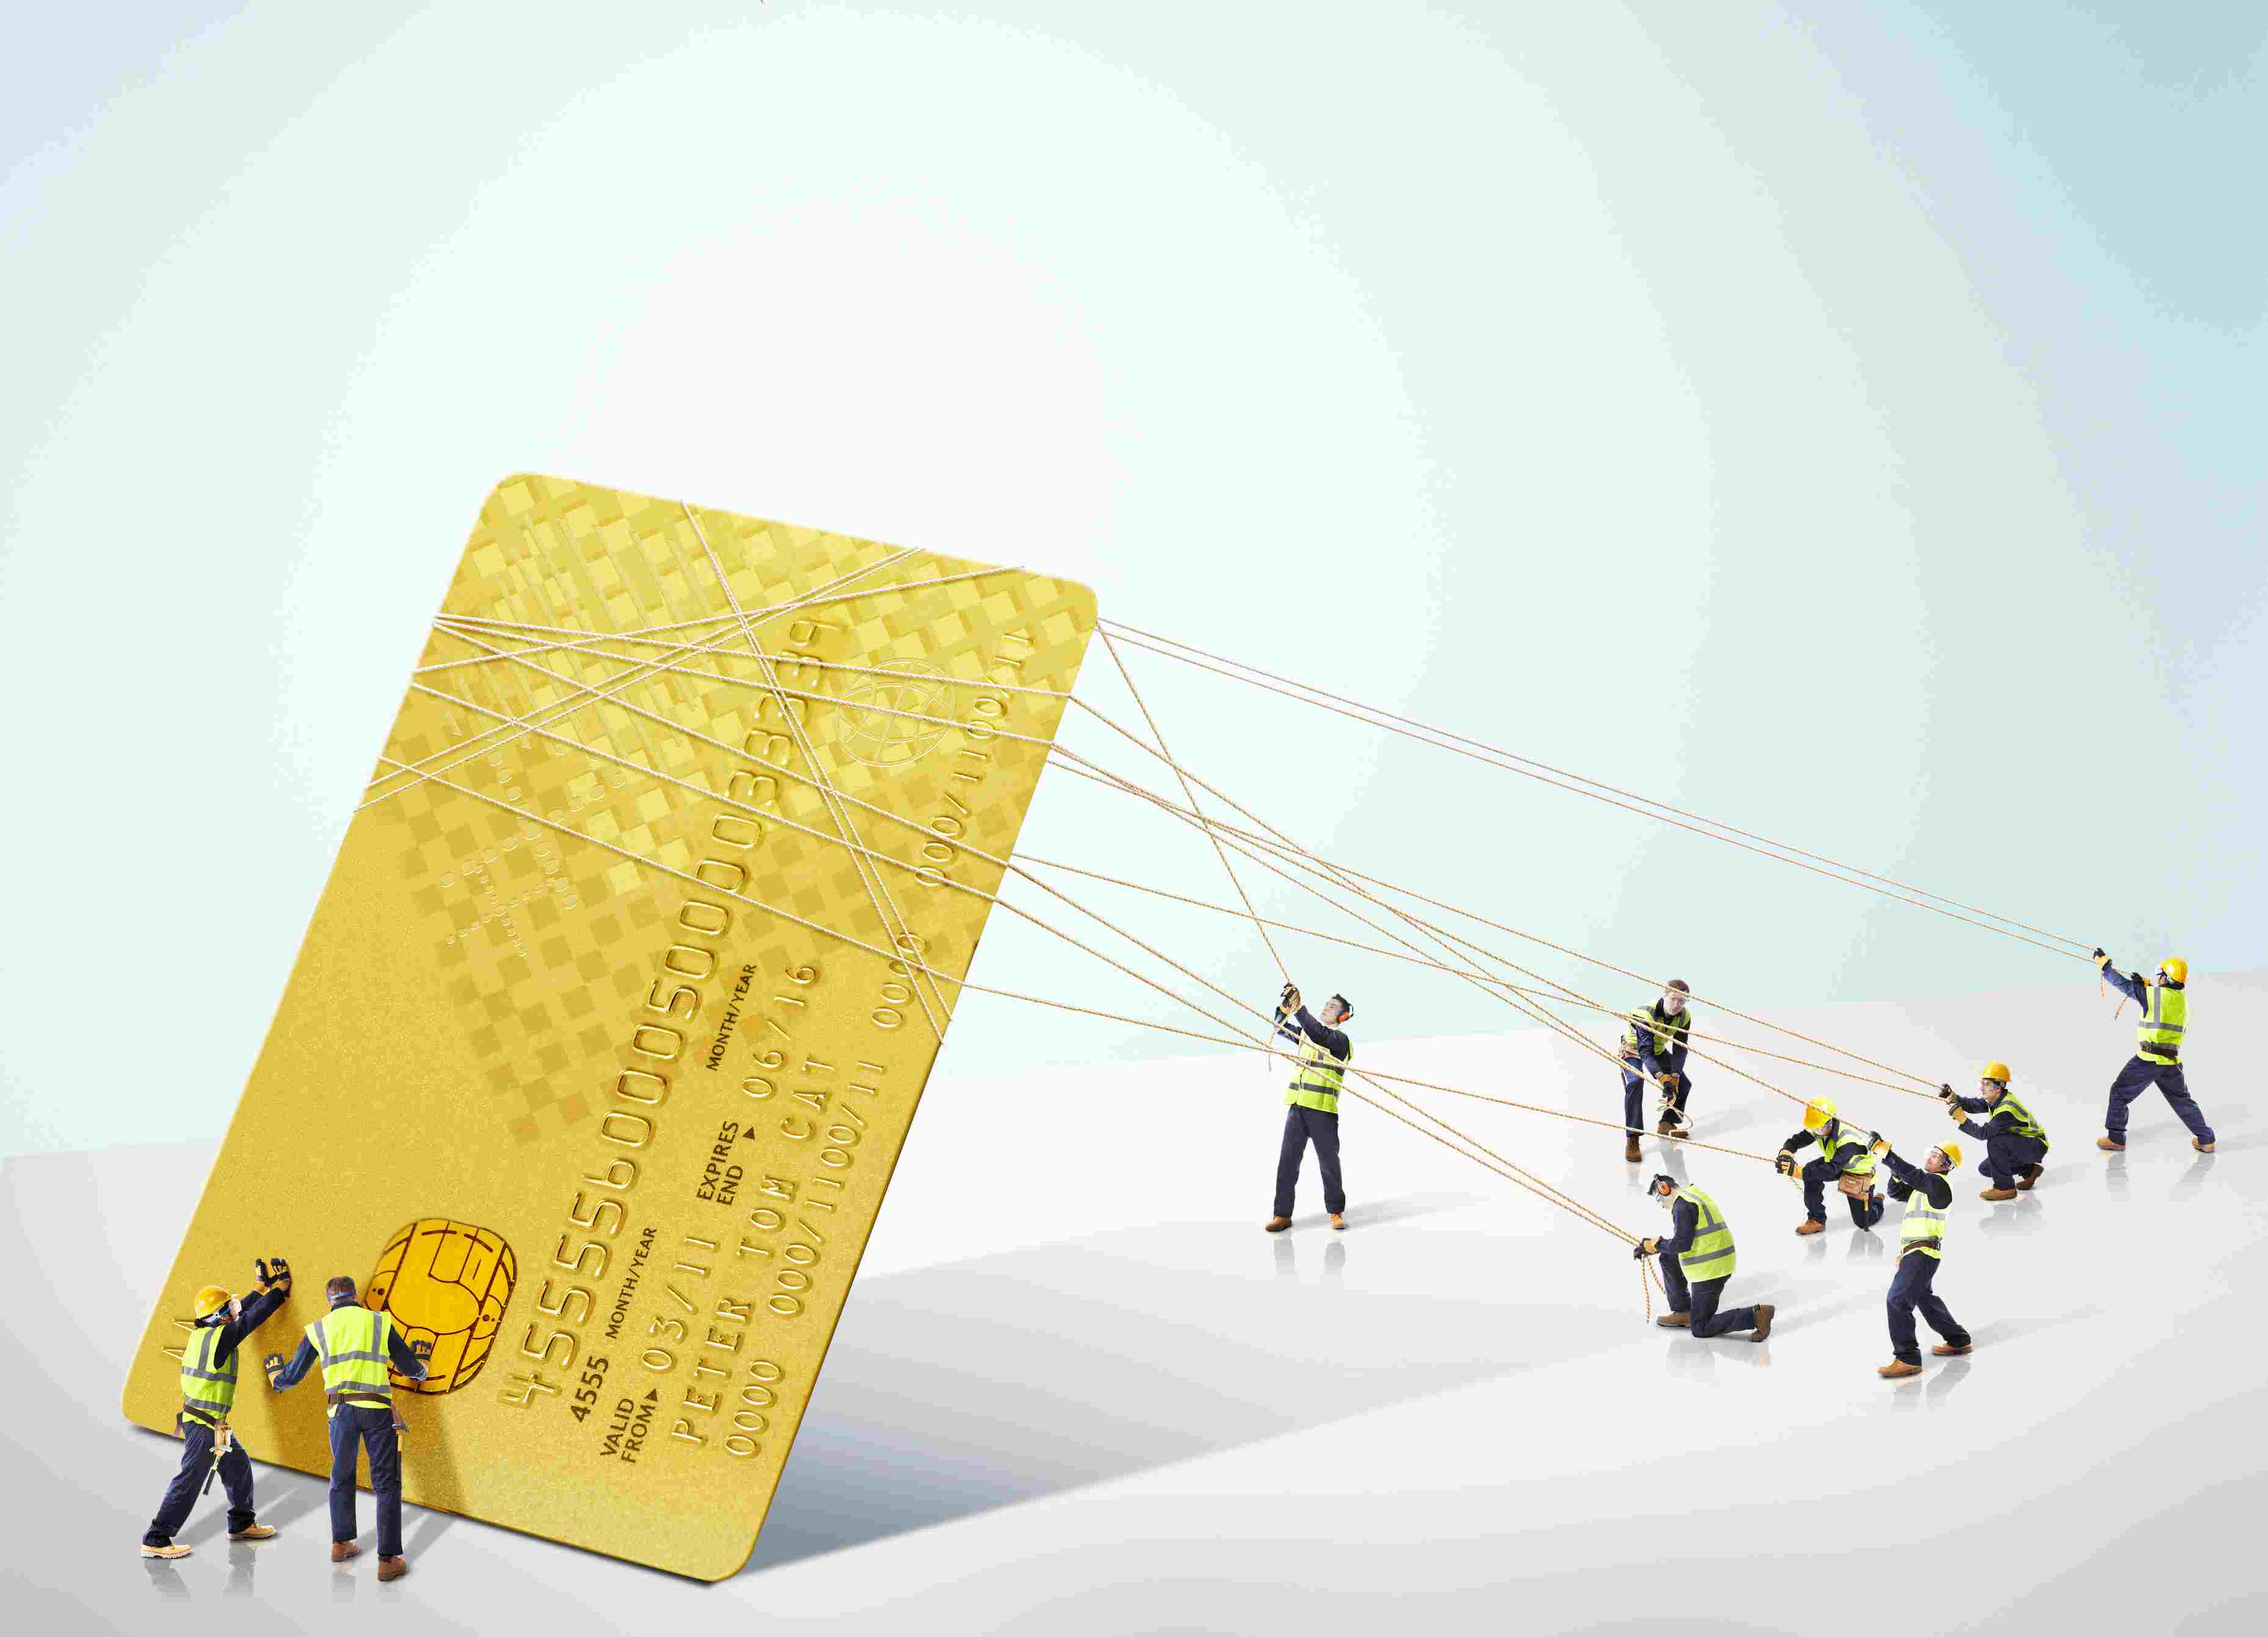 Group of builders carrying a giant credit card